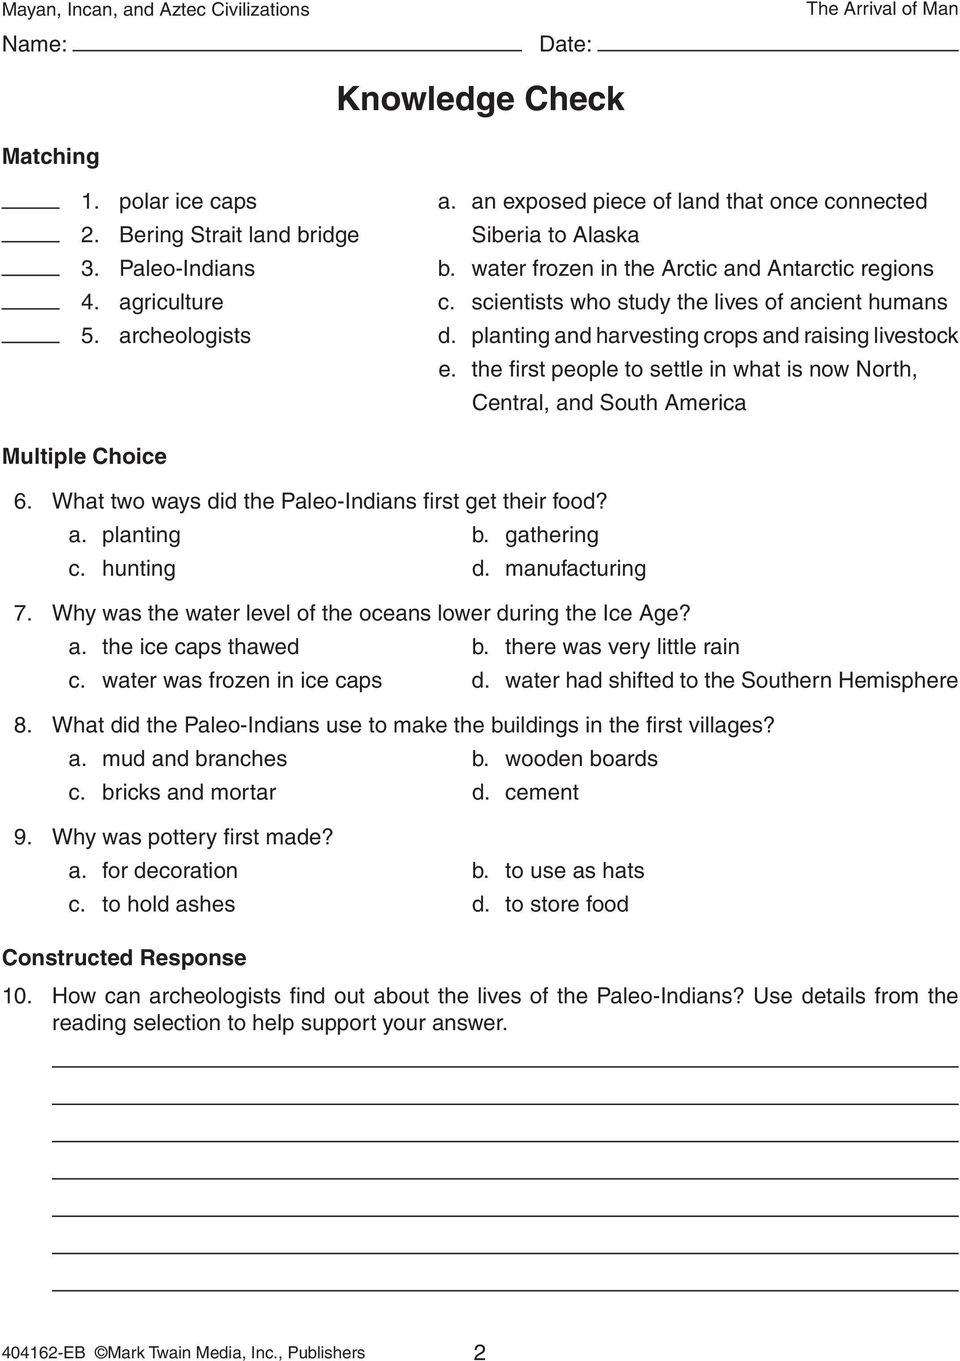 Planting And Harvesting Crops Raising Livestock Multiple Choice 6 What Two Ways Did The